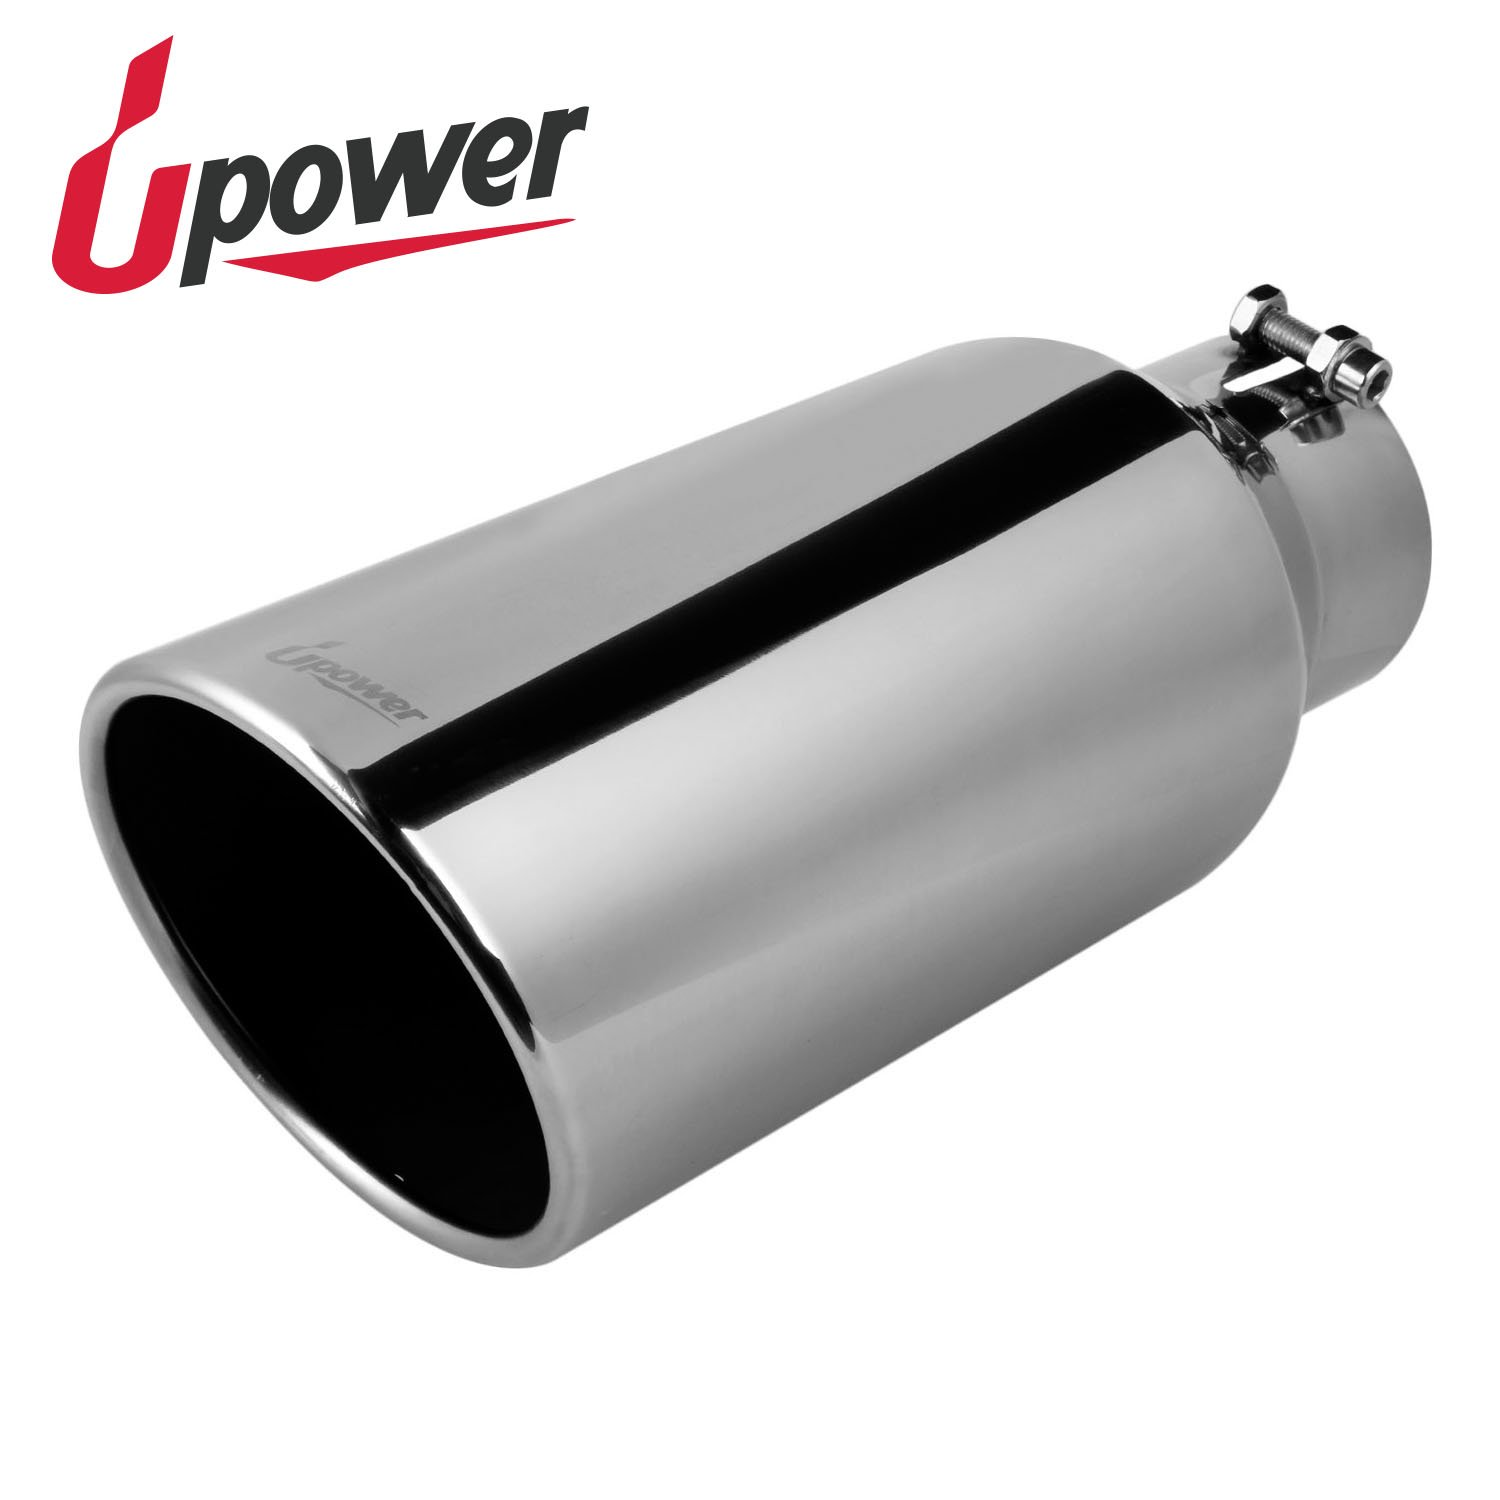 Upower Universal Diesel Trucks Car Exhaust Tip 4 Inch Inlet 6'' Outlet 15'' Long Stainless Steel Bolt-On